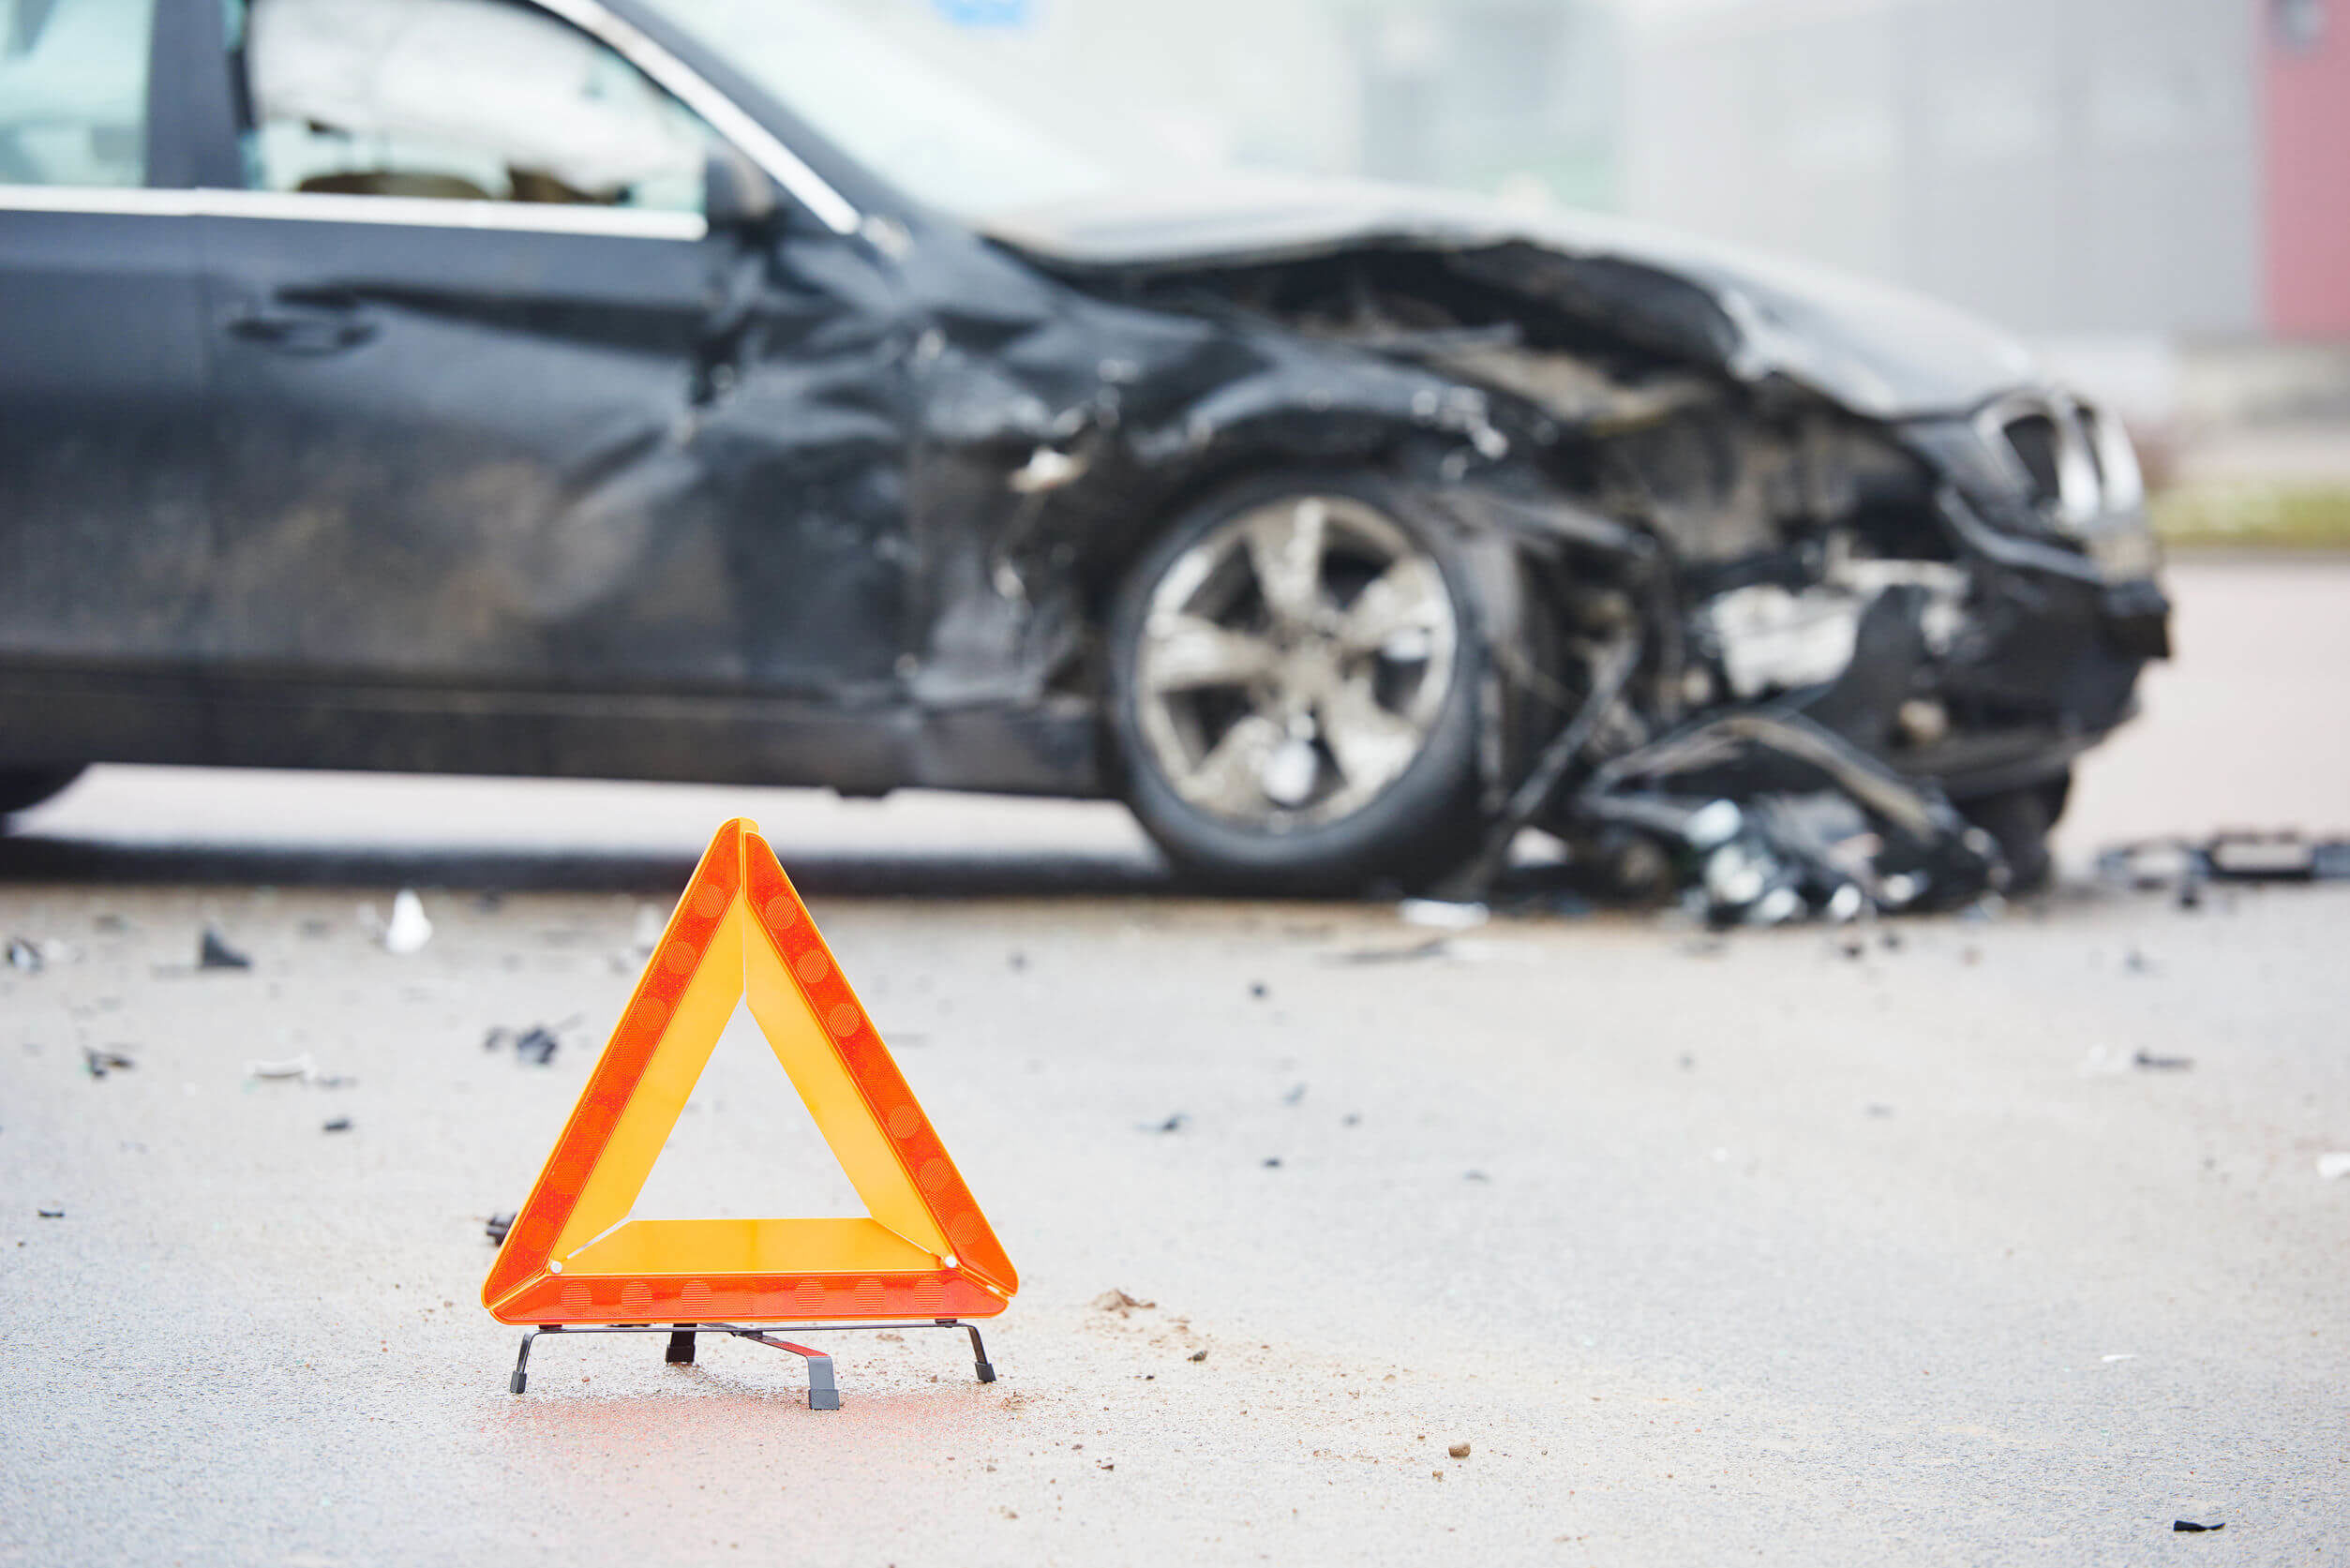 Crashed car in the background with a caution sign in the foreground